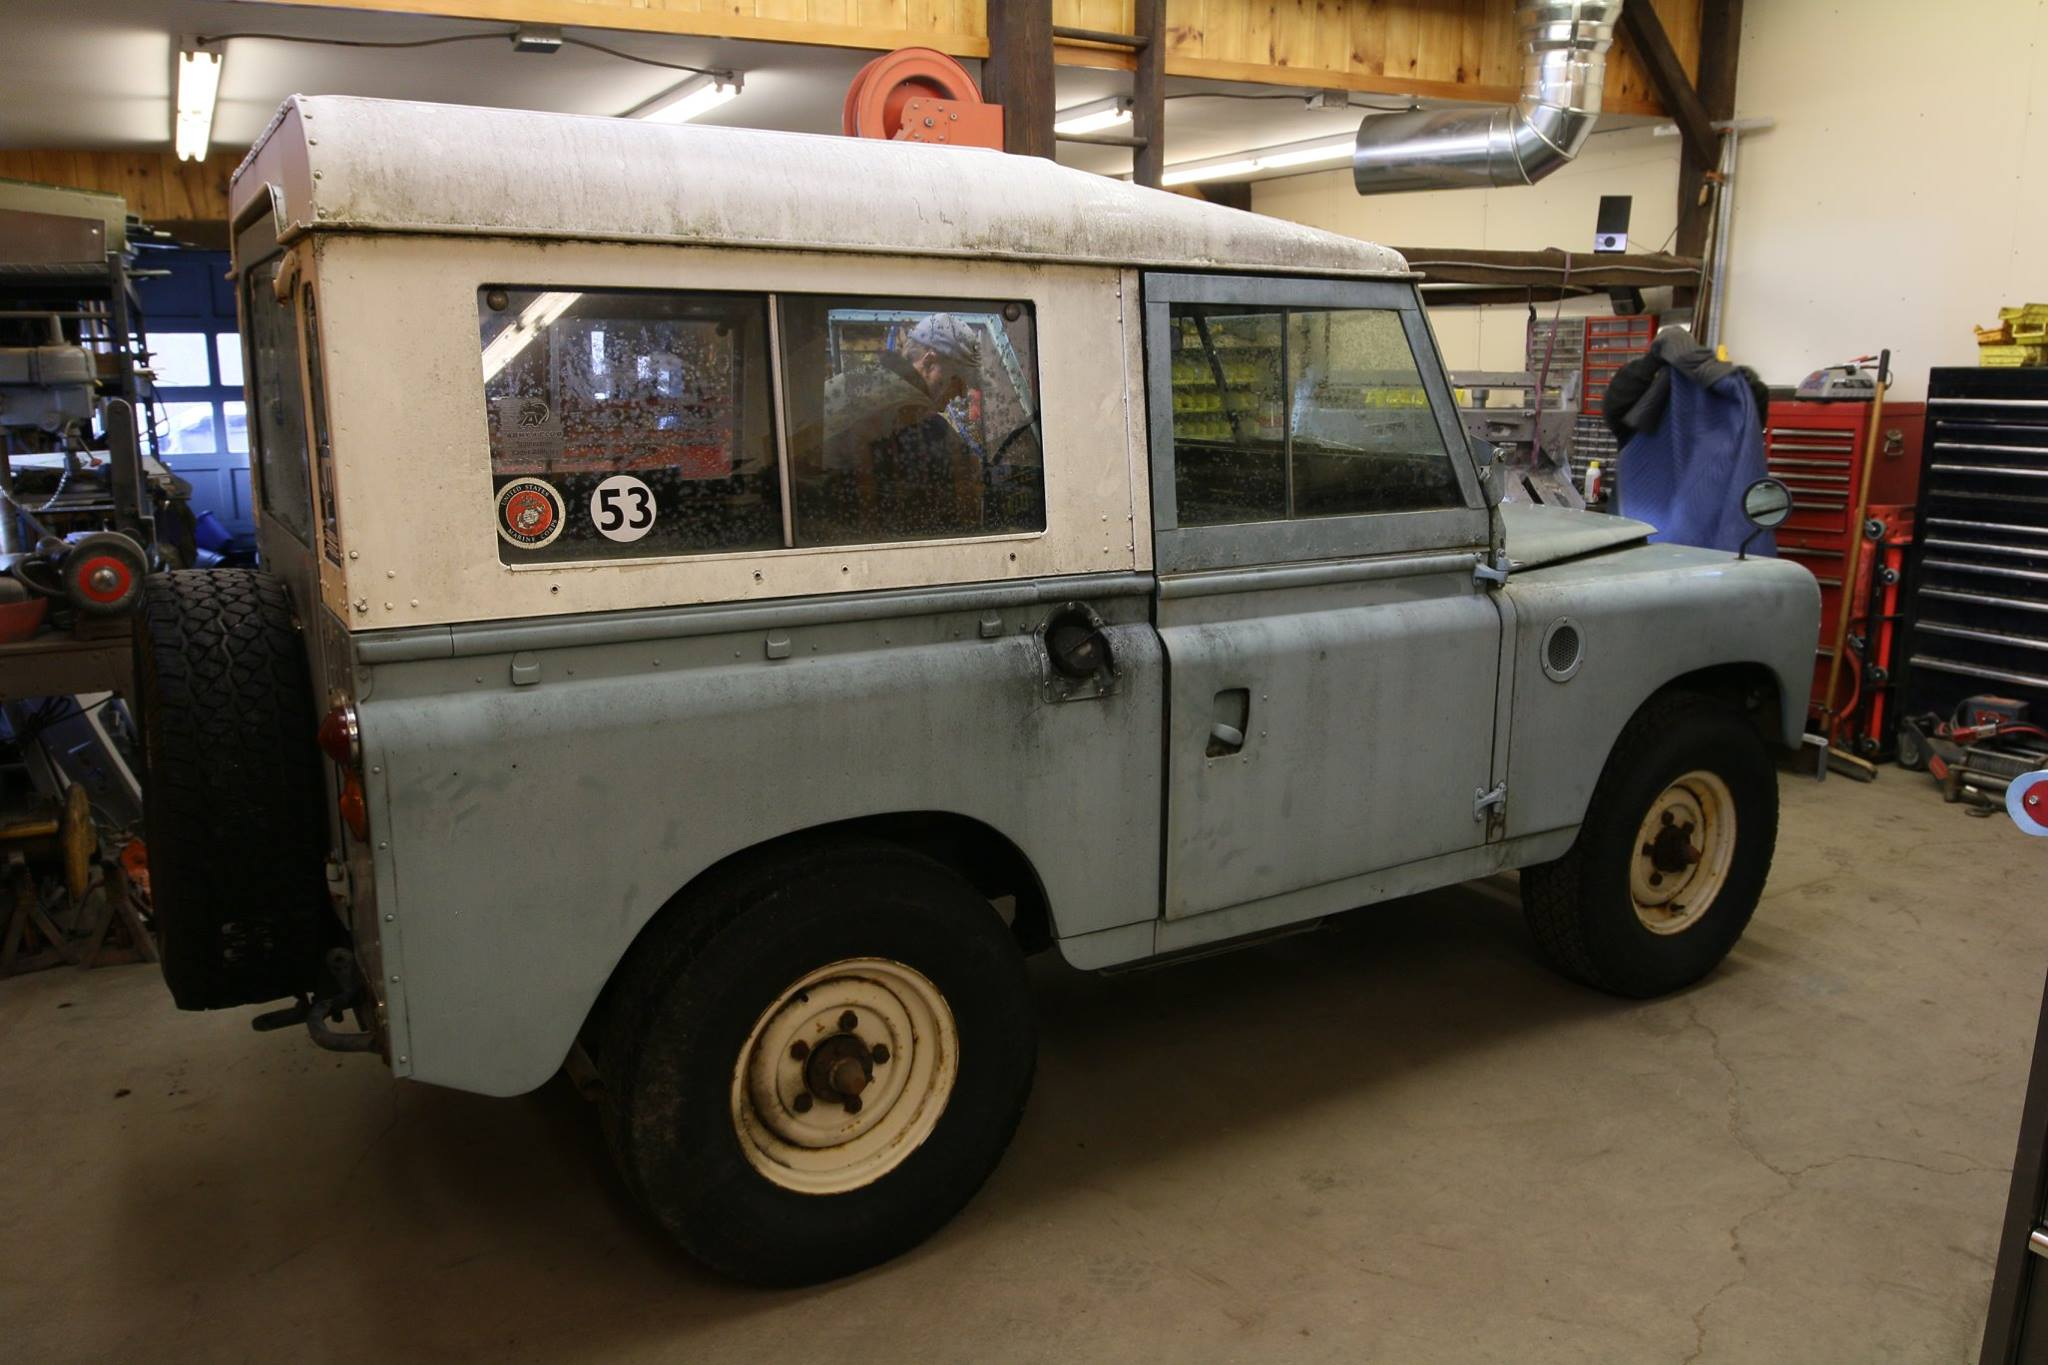 Under the skin, this Land Rover has rust and corrosion.